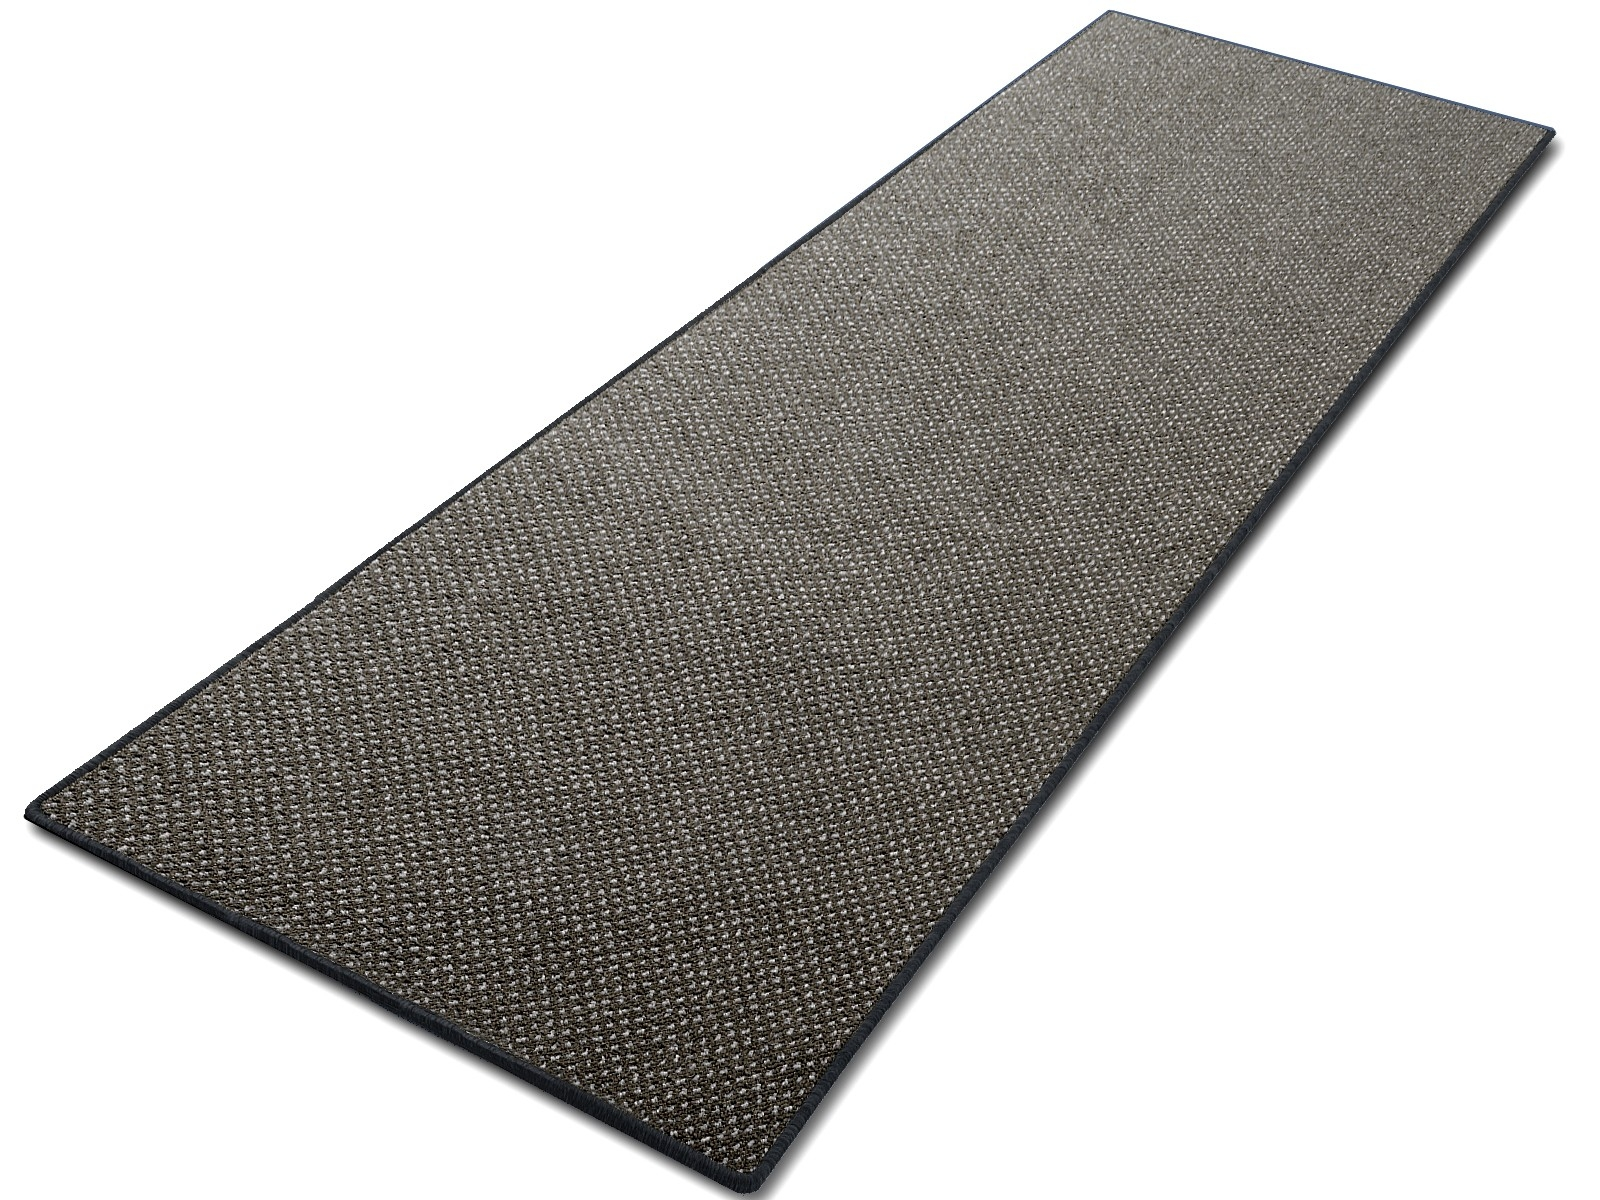 Classic Carpet Runner Rug Ponto Grey Pertaining To Rug Runners Grey (View 6 of 20)